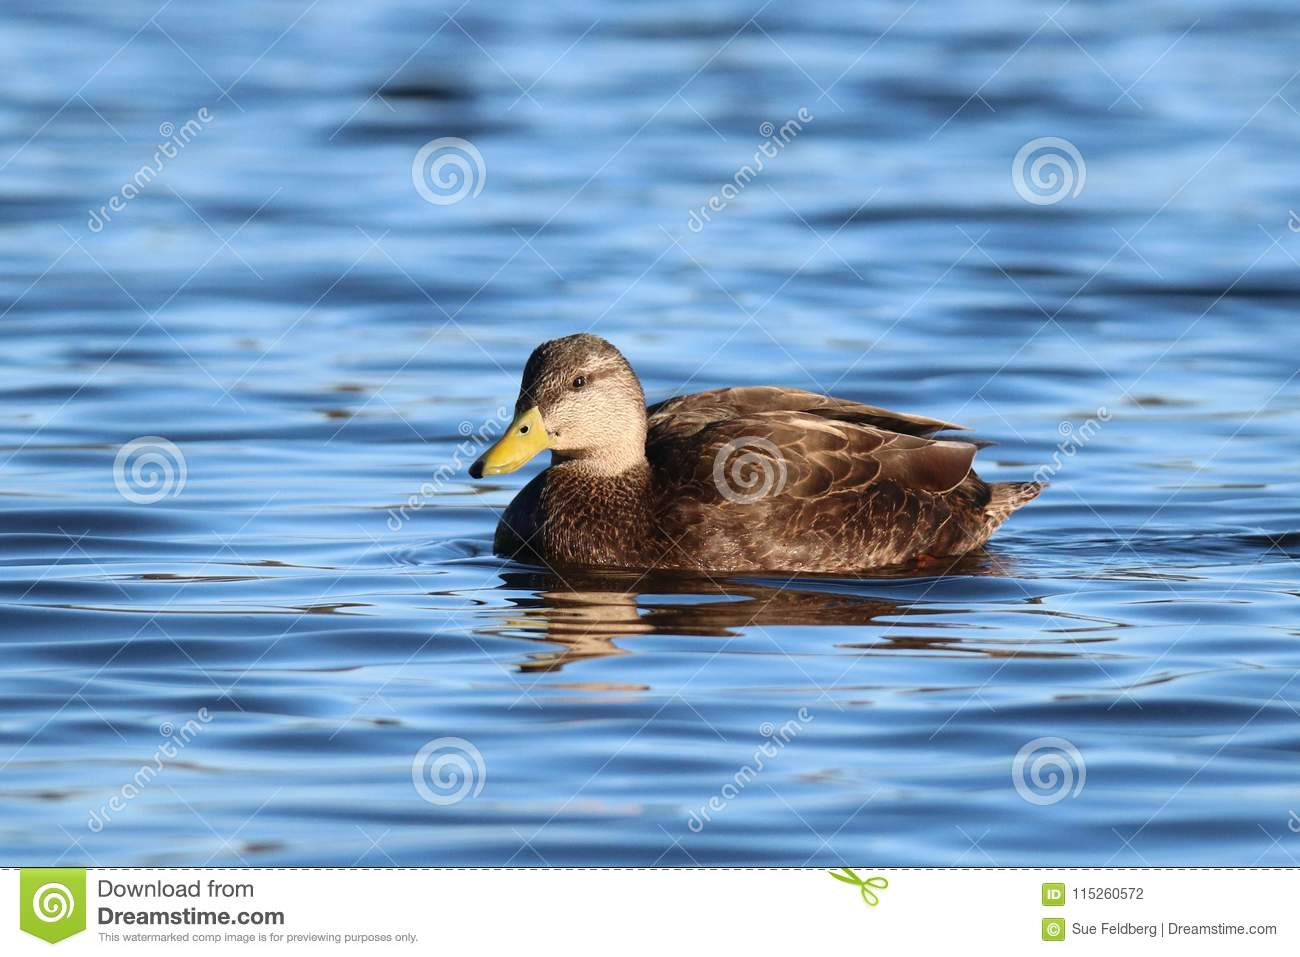 American Black Duck Swimming on a Blue Lake